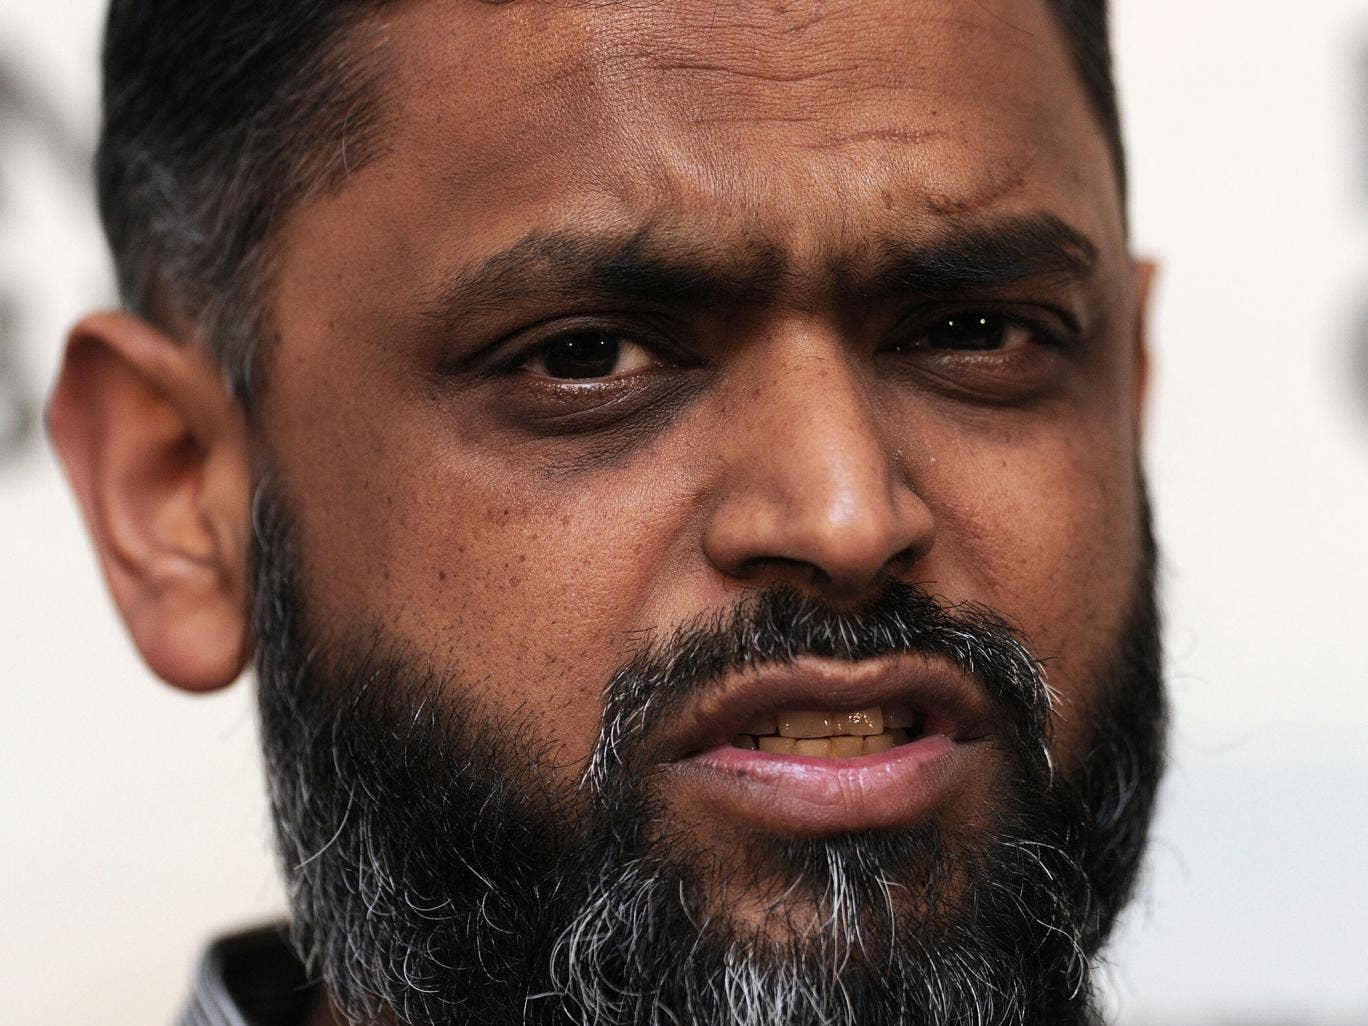 Moazzam Begg pictured in January 2012